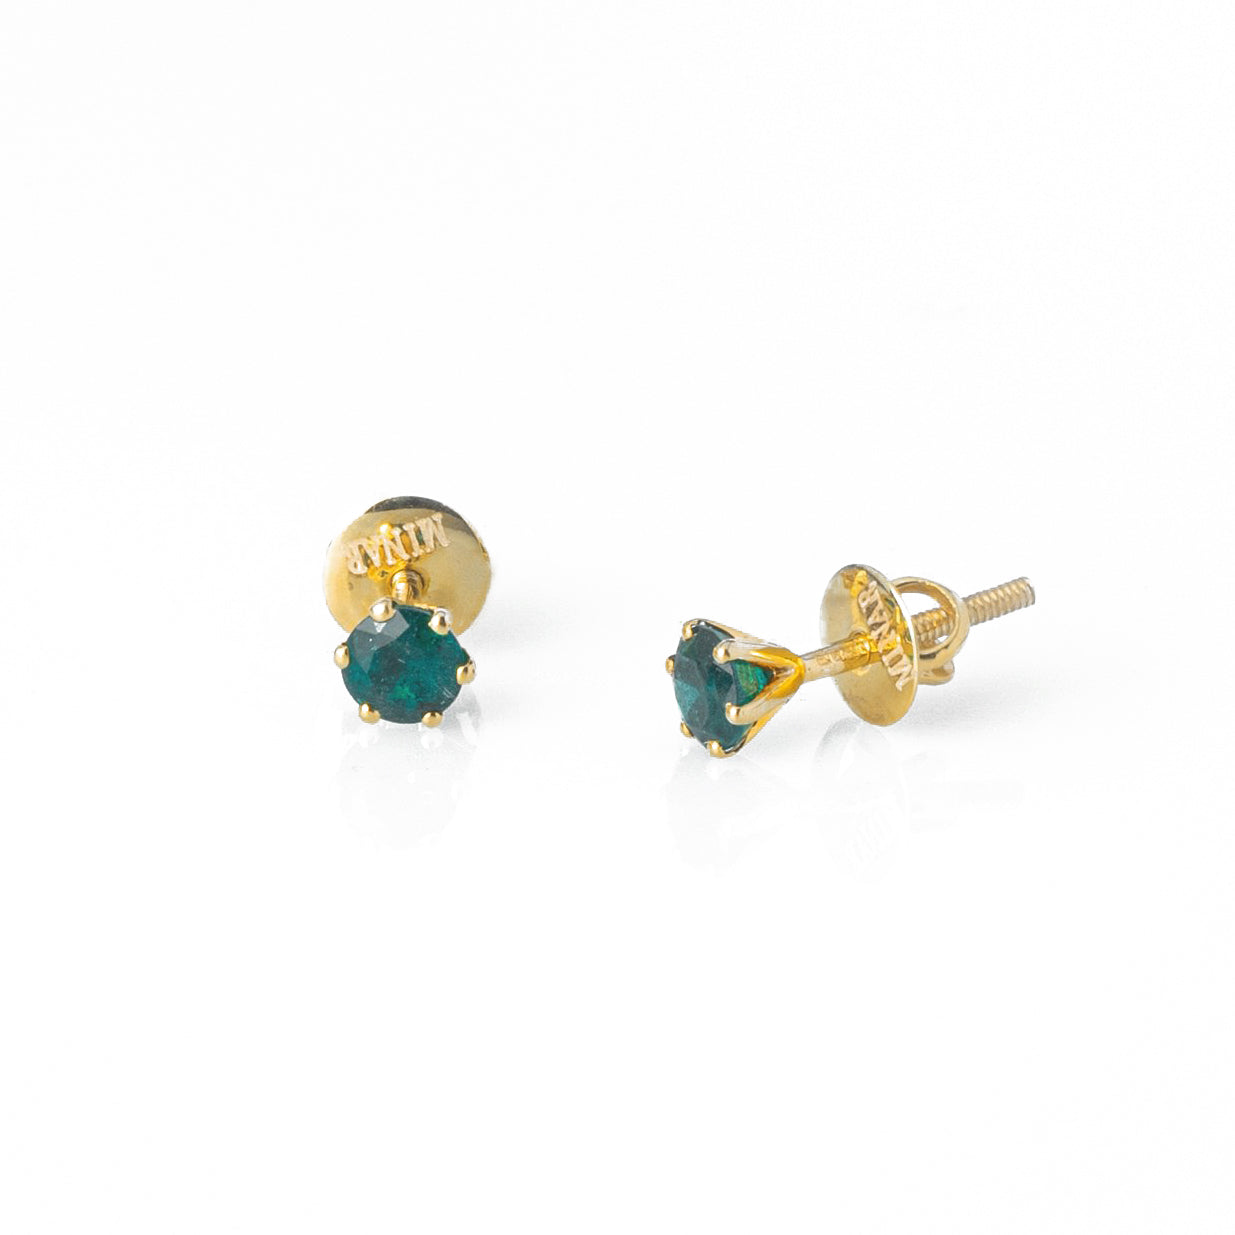 18ct Yellow Gold 0.57ct Round Brilliant Cut Emerald Stud Earrings (MCS3120)